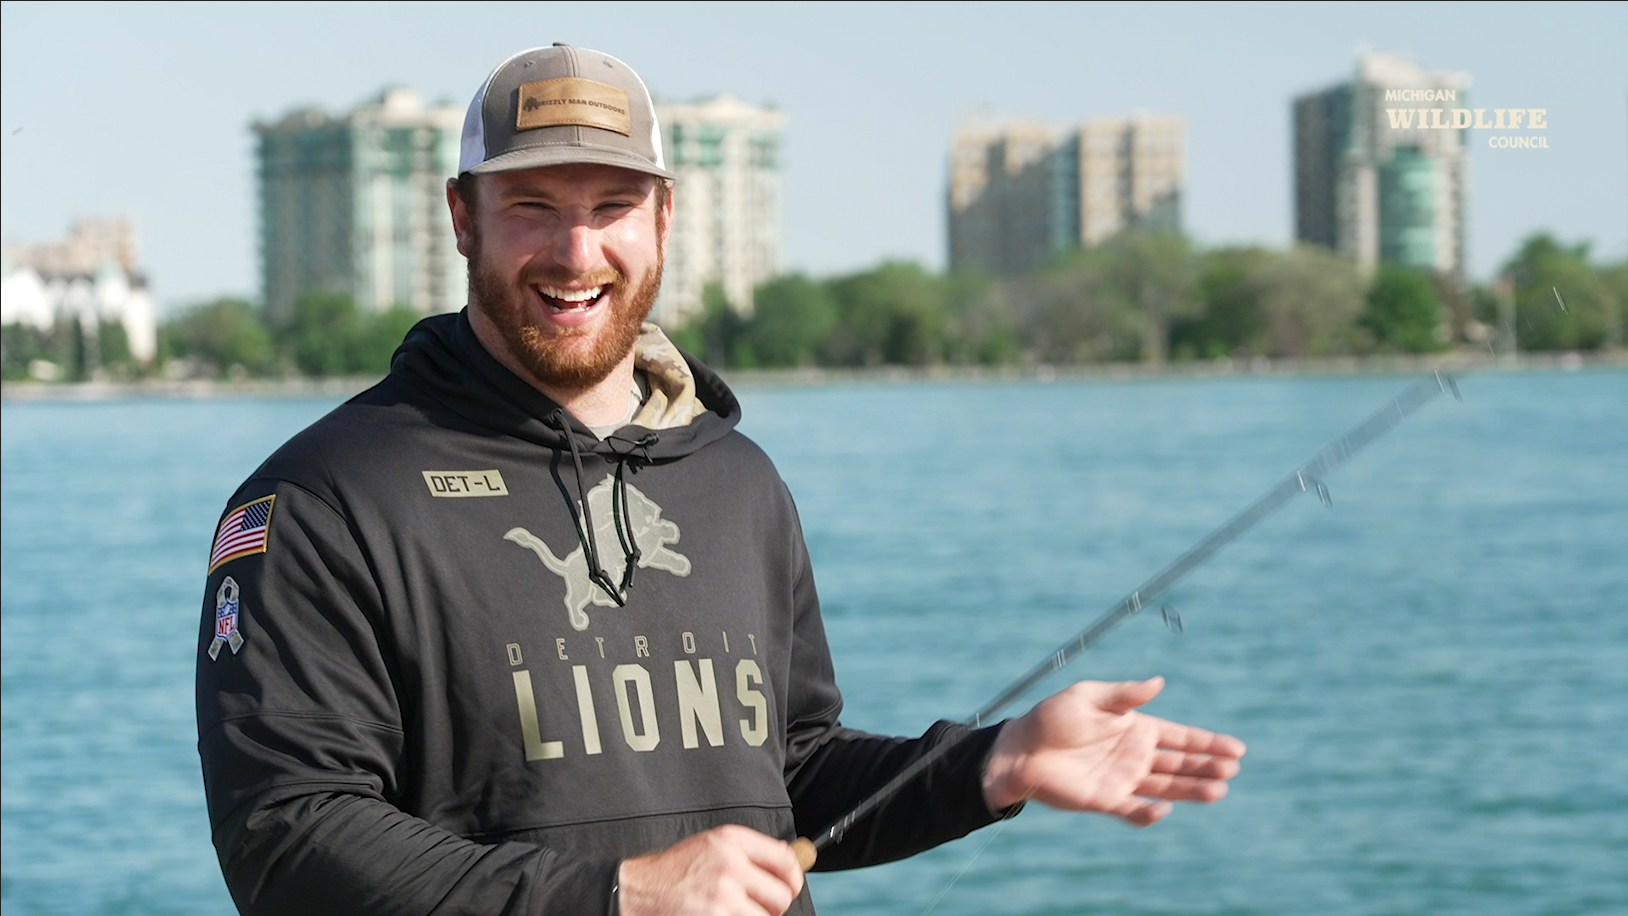 Fishing is at the center of it all for Detroit Lion All-Pro Frank Ragnow